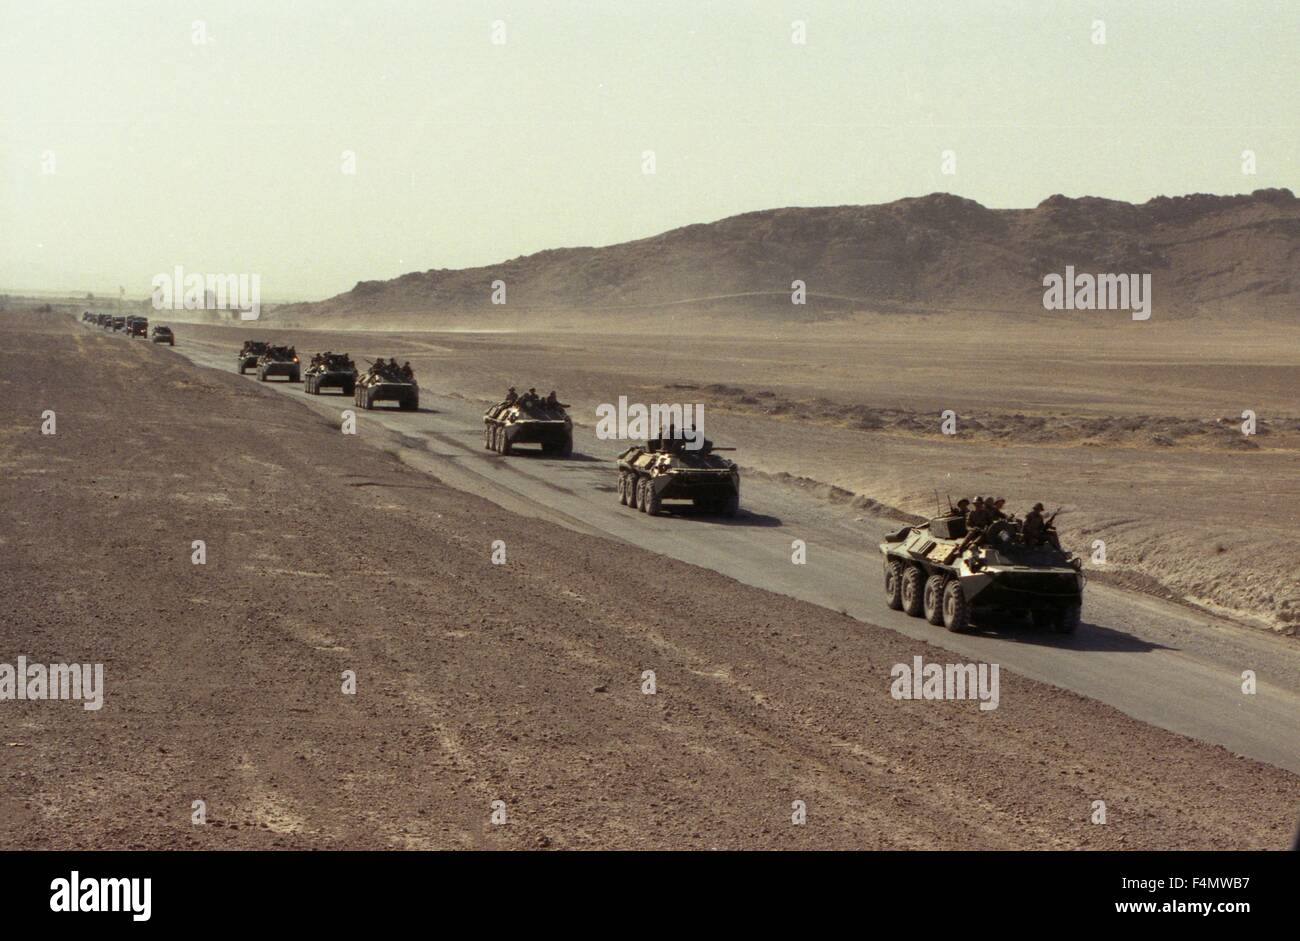 Soviet Afghanistan war - Page 6 Afghanistan-the-soviet-military-technics-on-road-to-kandahar-F4MWB7